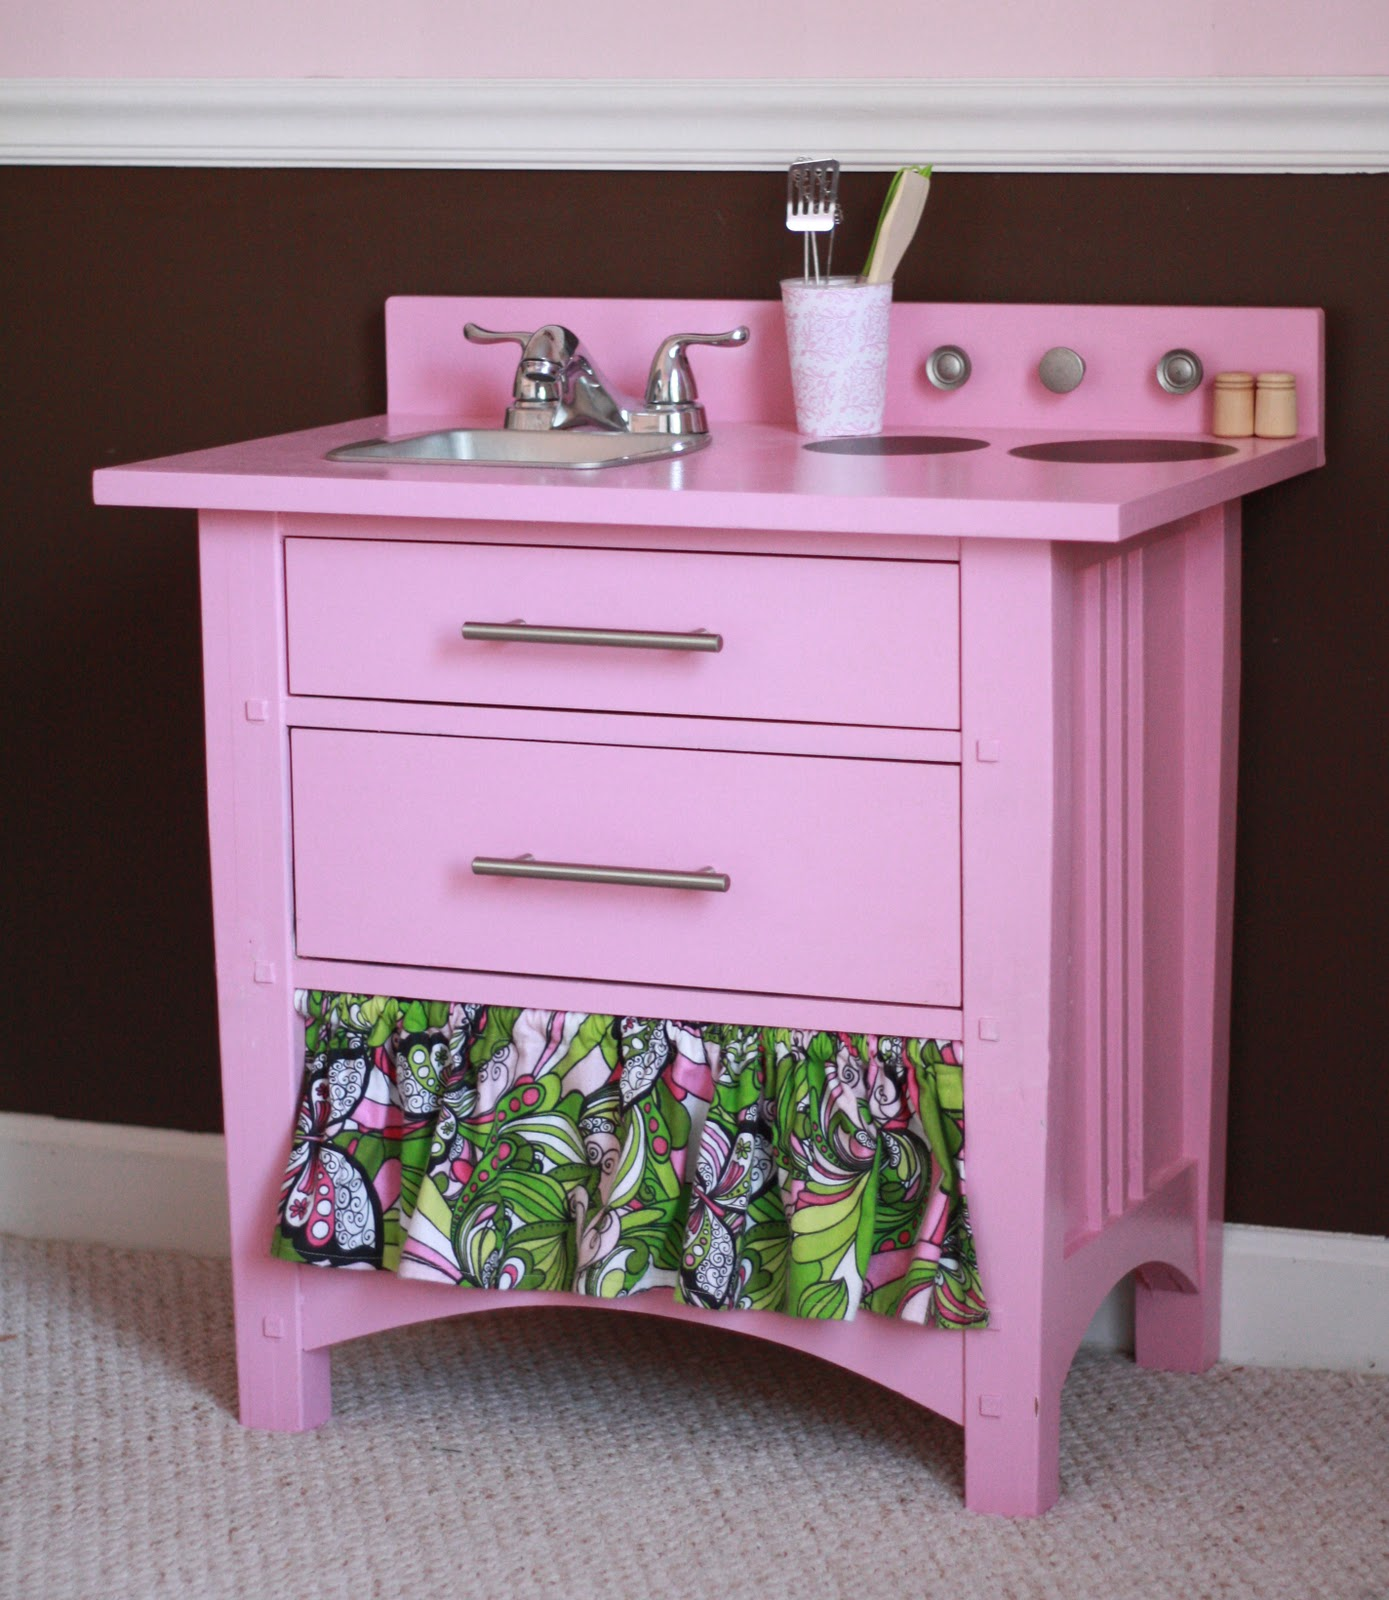 The fast lane nightstand play kitchen makeover for Little girls nightstand